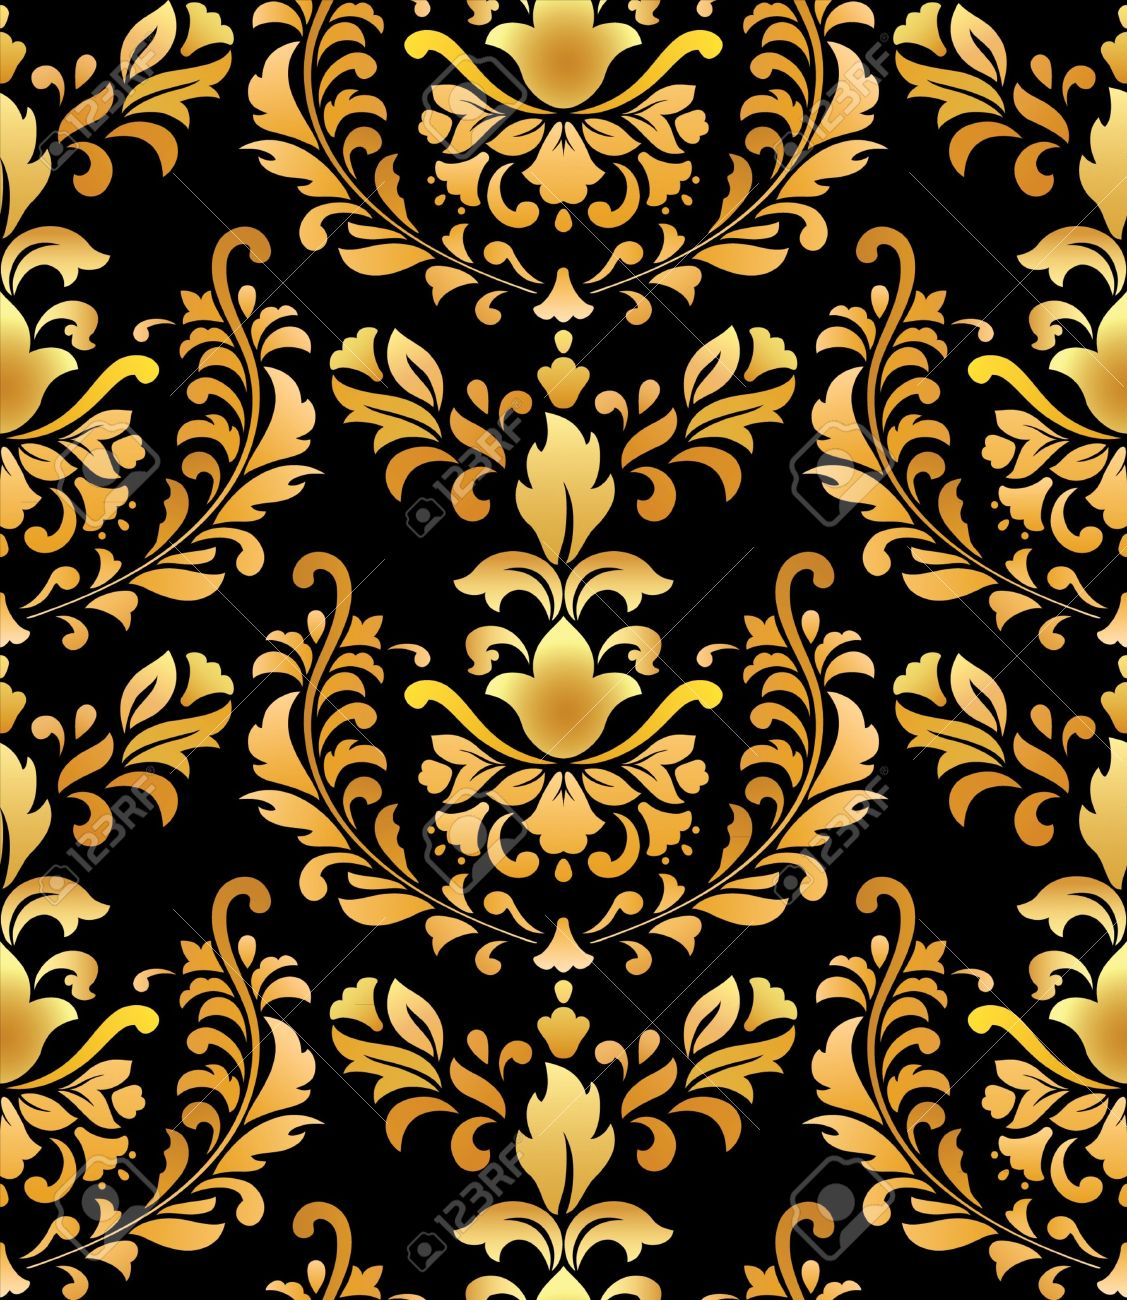 Black And Gold Damask Wallpapers The Art Mad Wallpapers 1127x1300